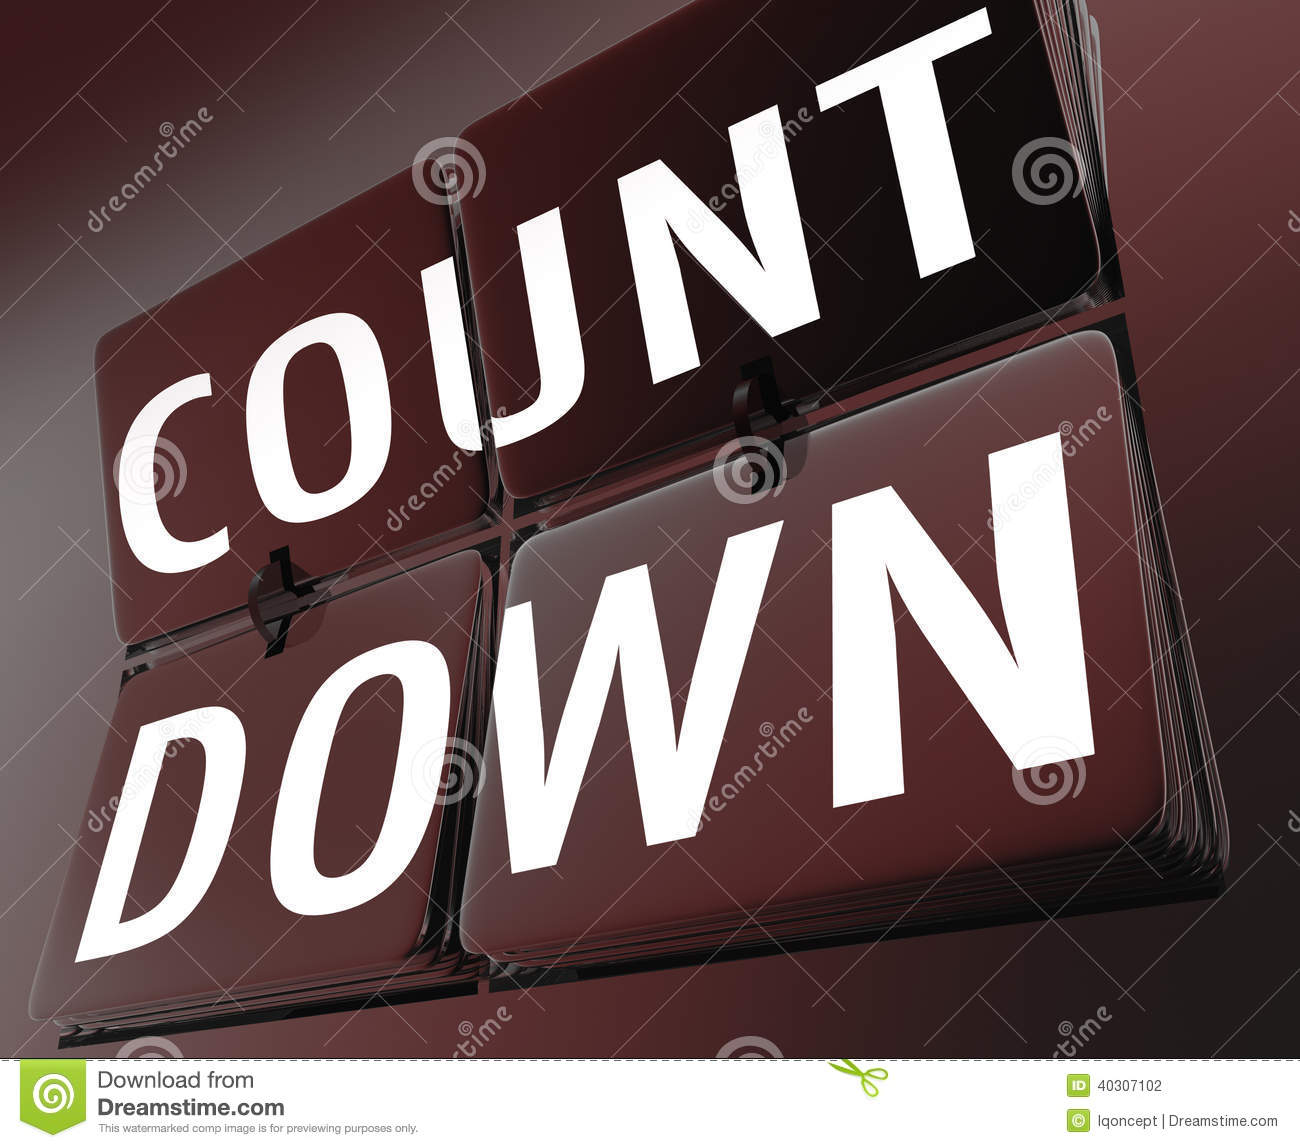 Countdown letter 1 clipart clipart free stock Countdown letter 1 clipart - ClipartFox clipart free stock